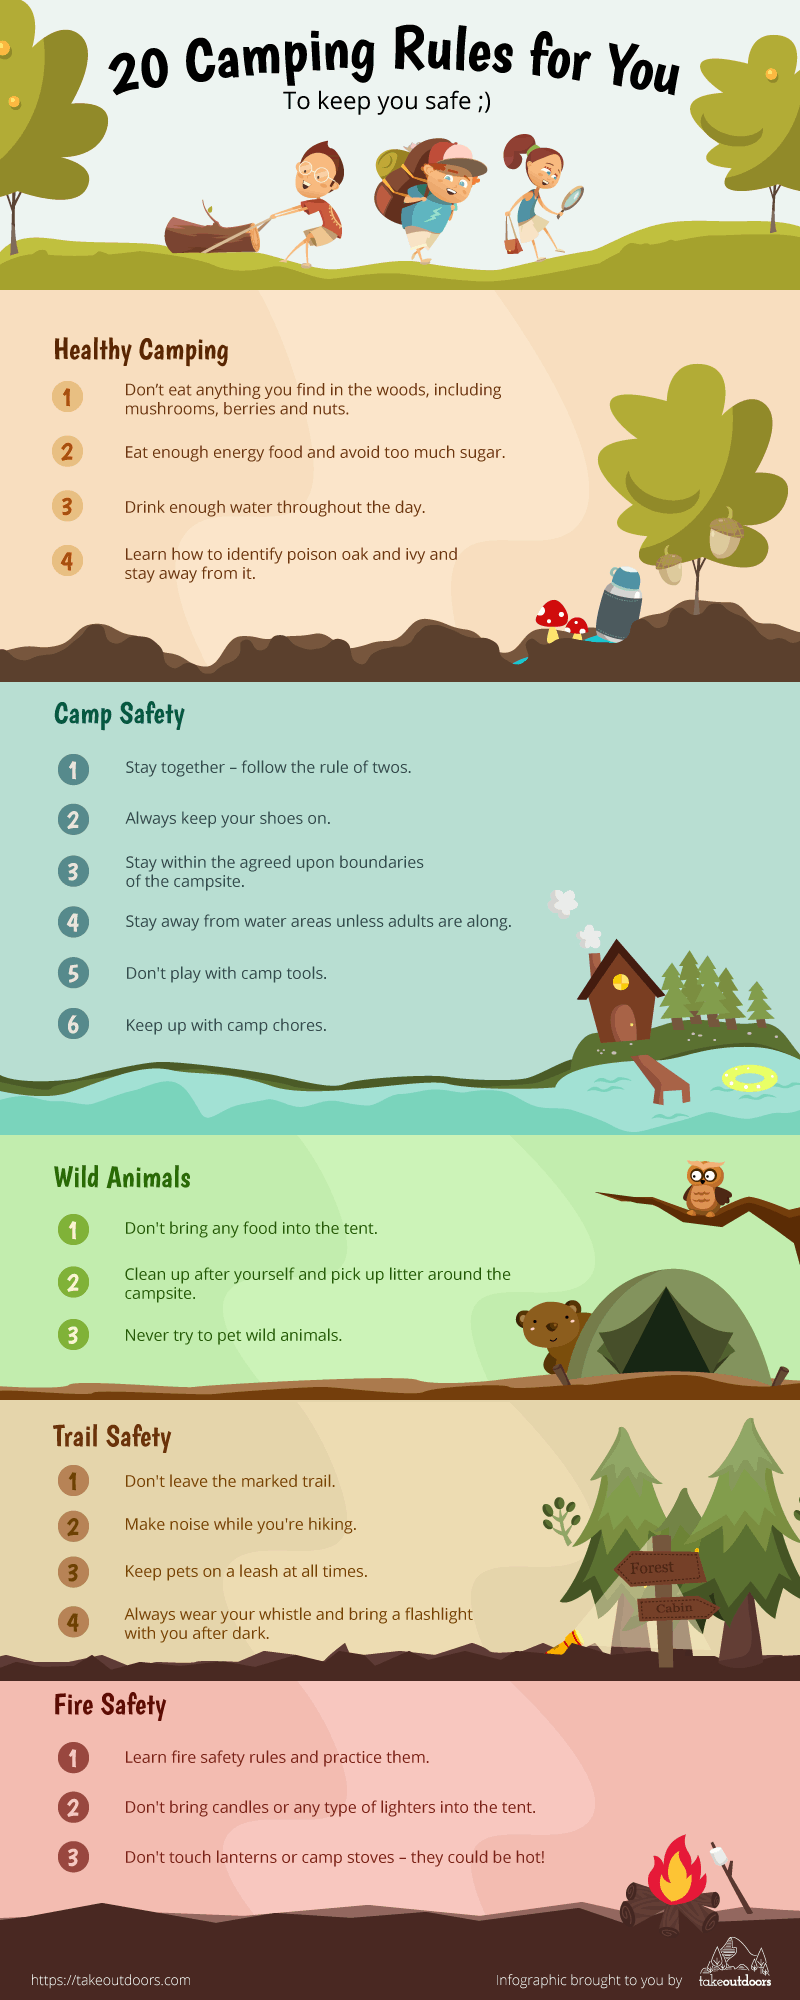 List of Camping Rules for Kids